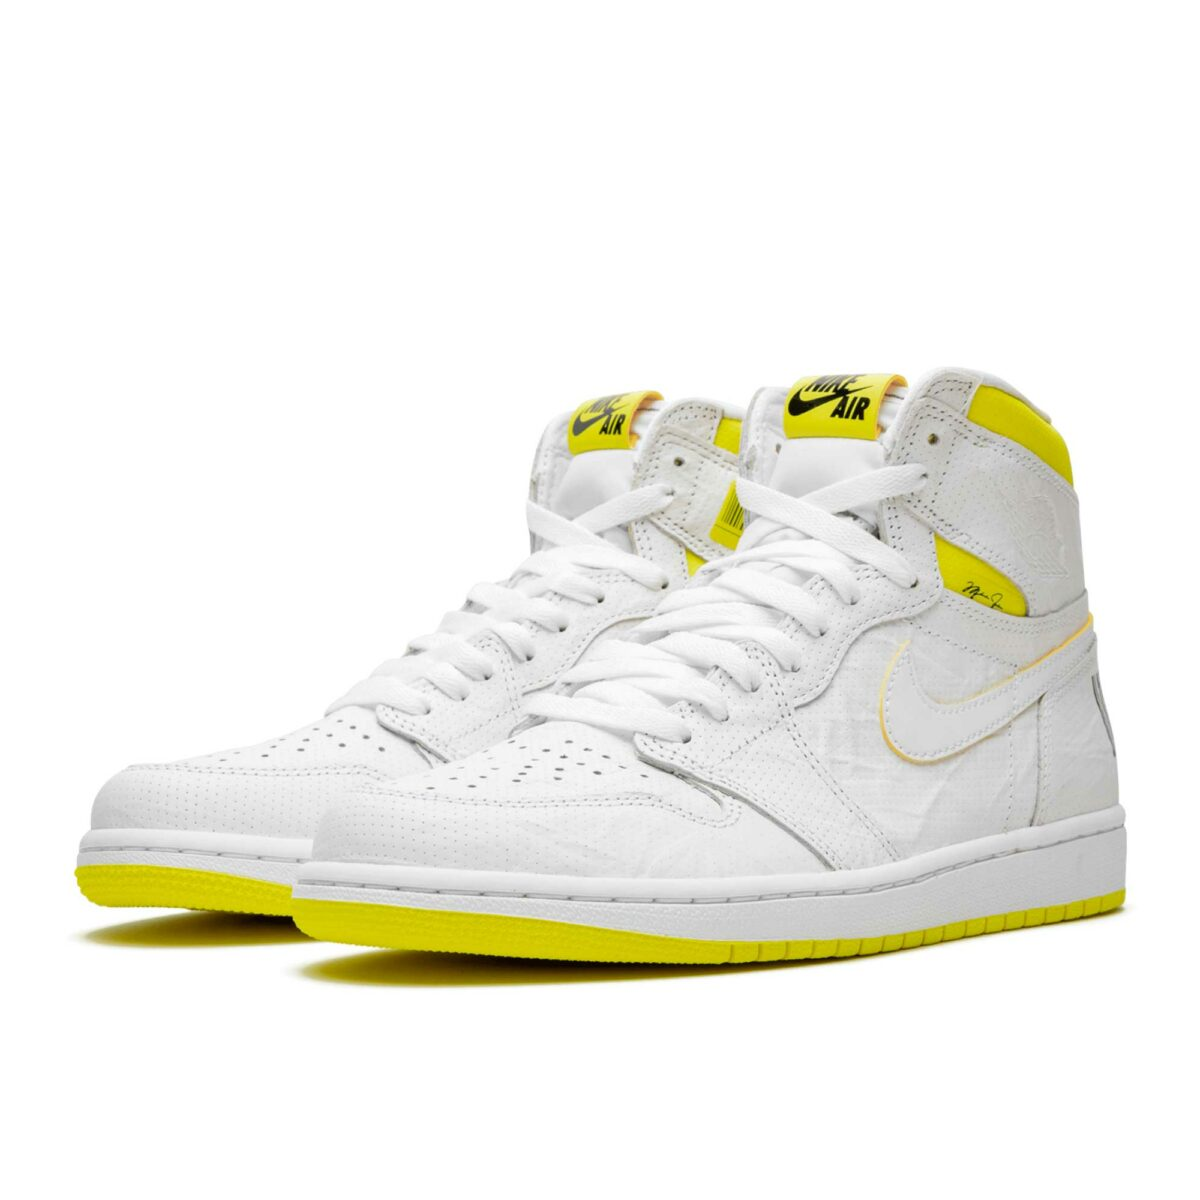 nike air Jordan 1 first class flight white 555088_170 купить